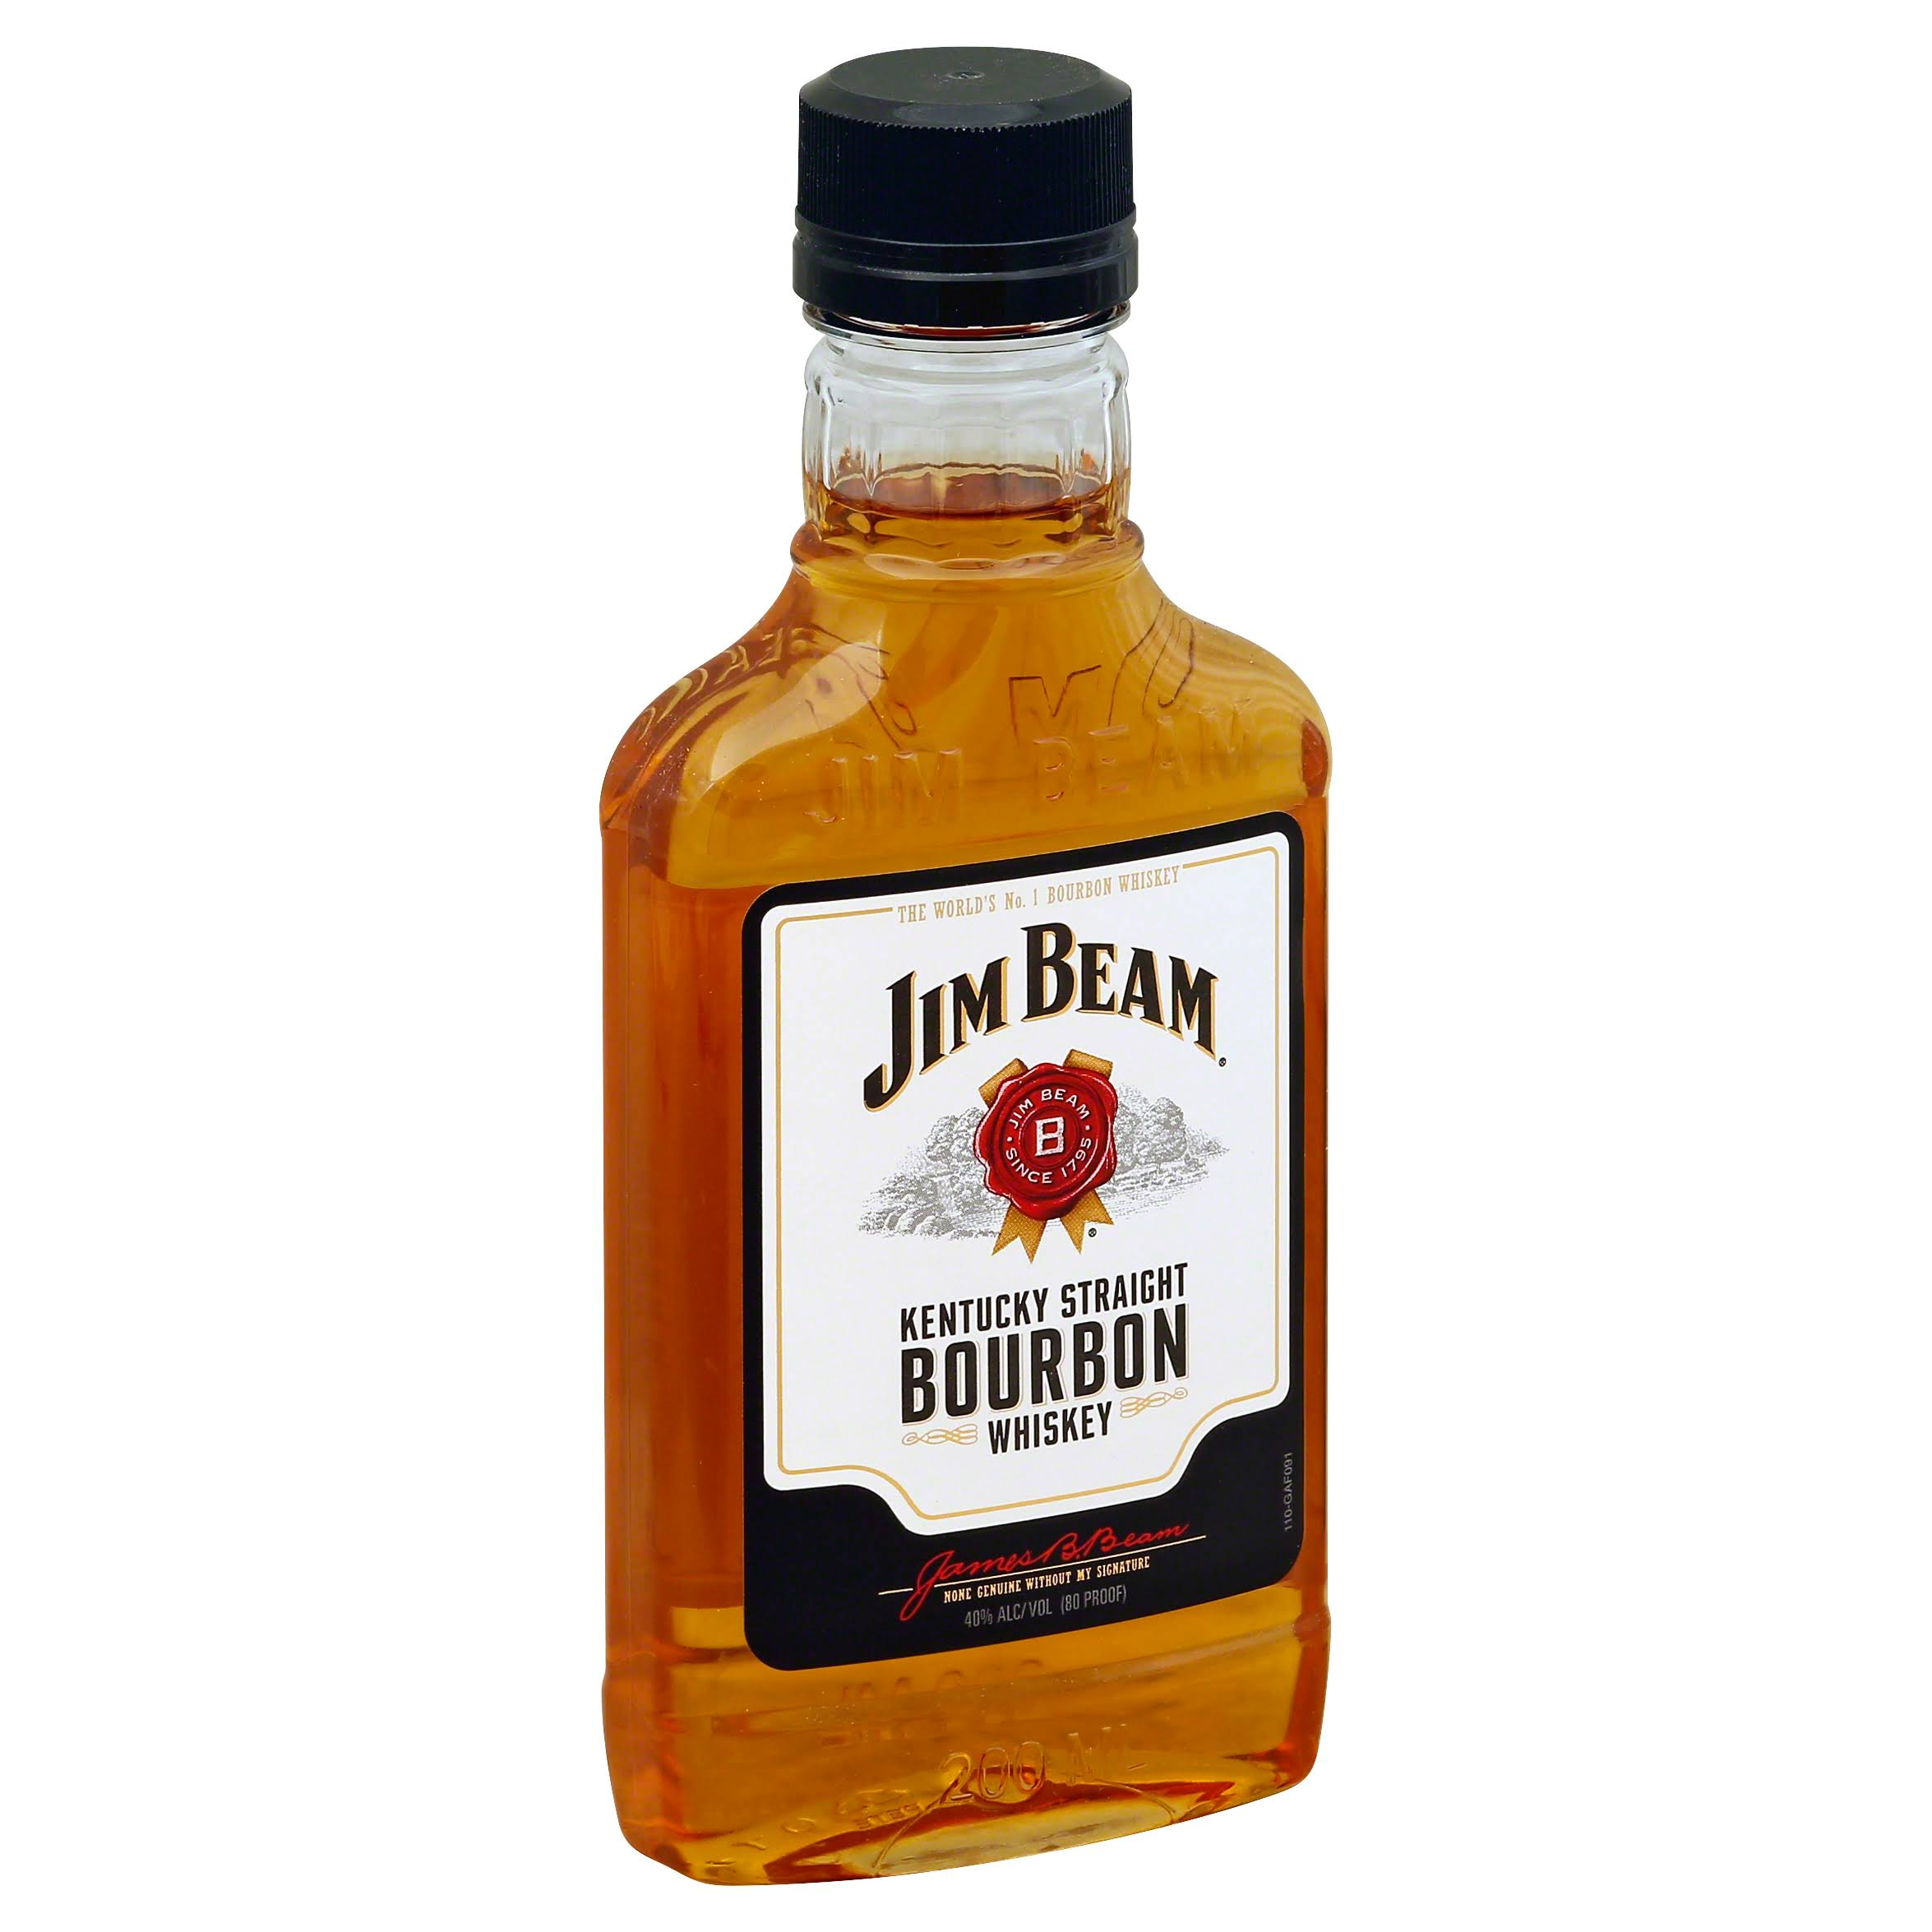 Jim Beam Kentucky Straight Bourbon Whiskey - 200ml